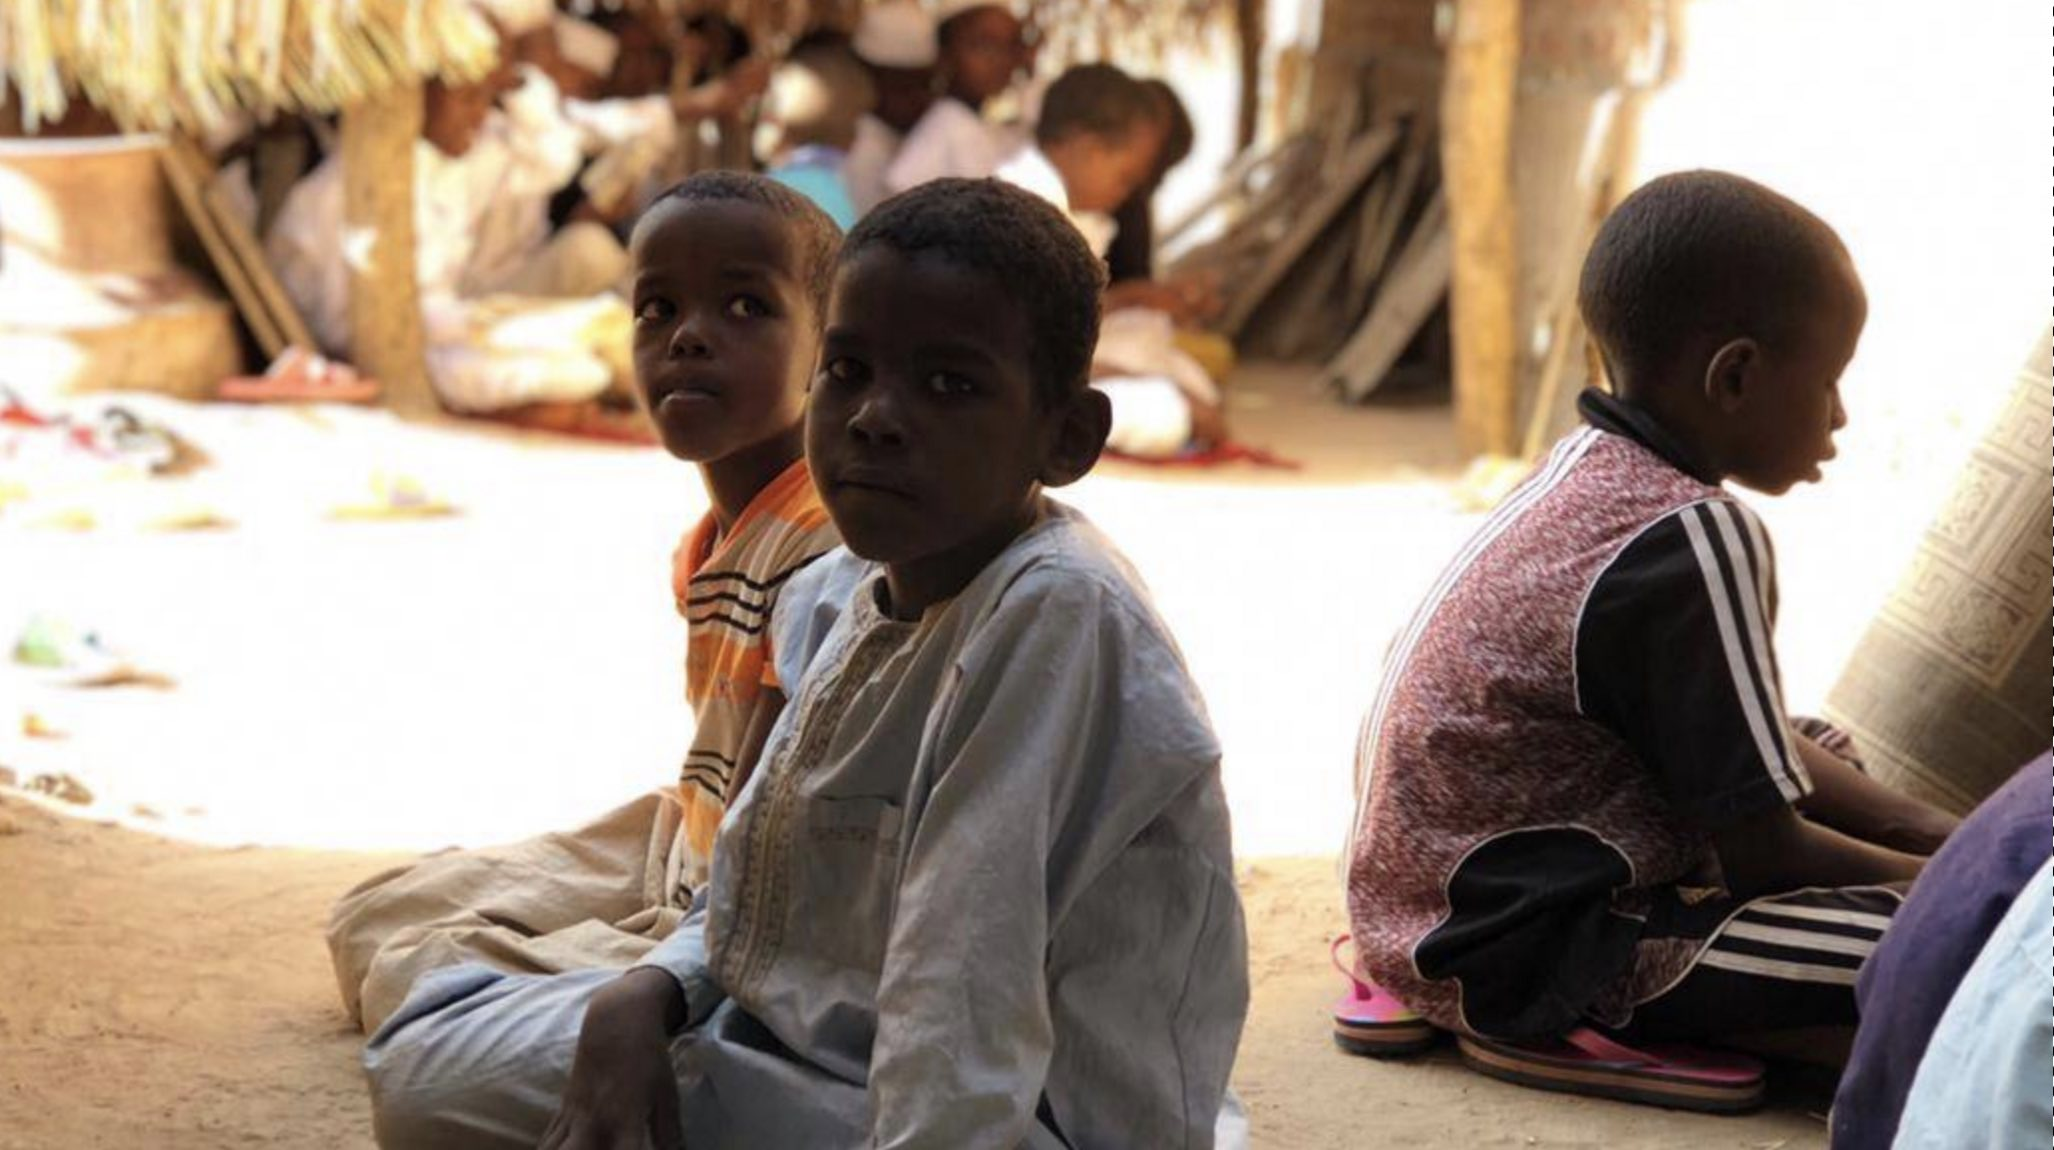 Build a proper shelter for children studying at Quran and Hifdh school in Chad.